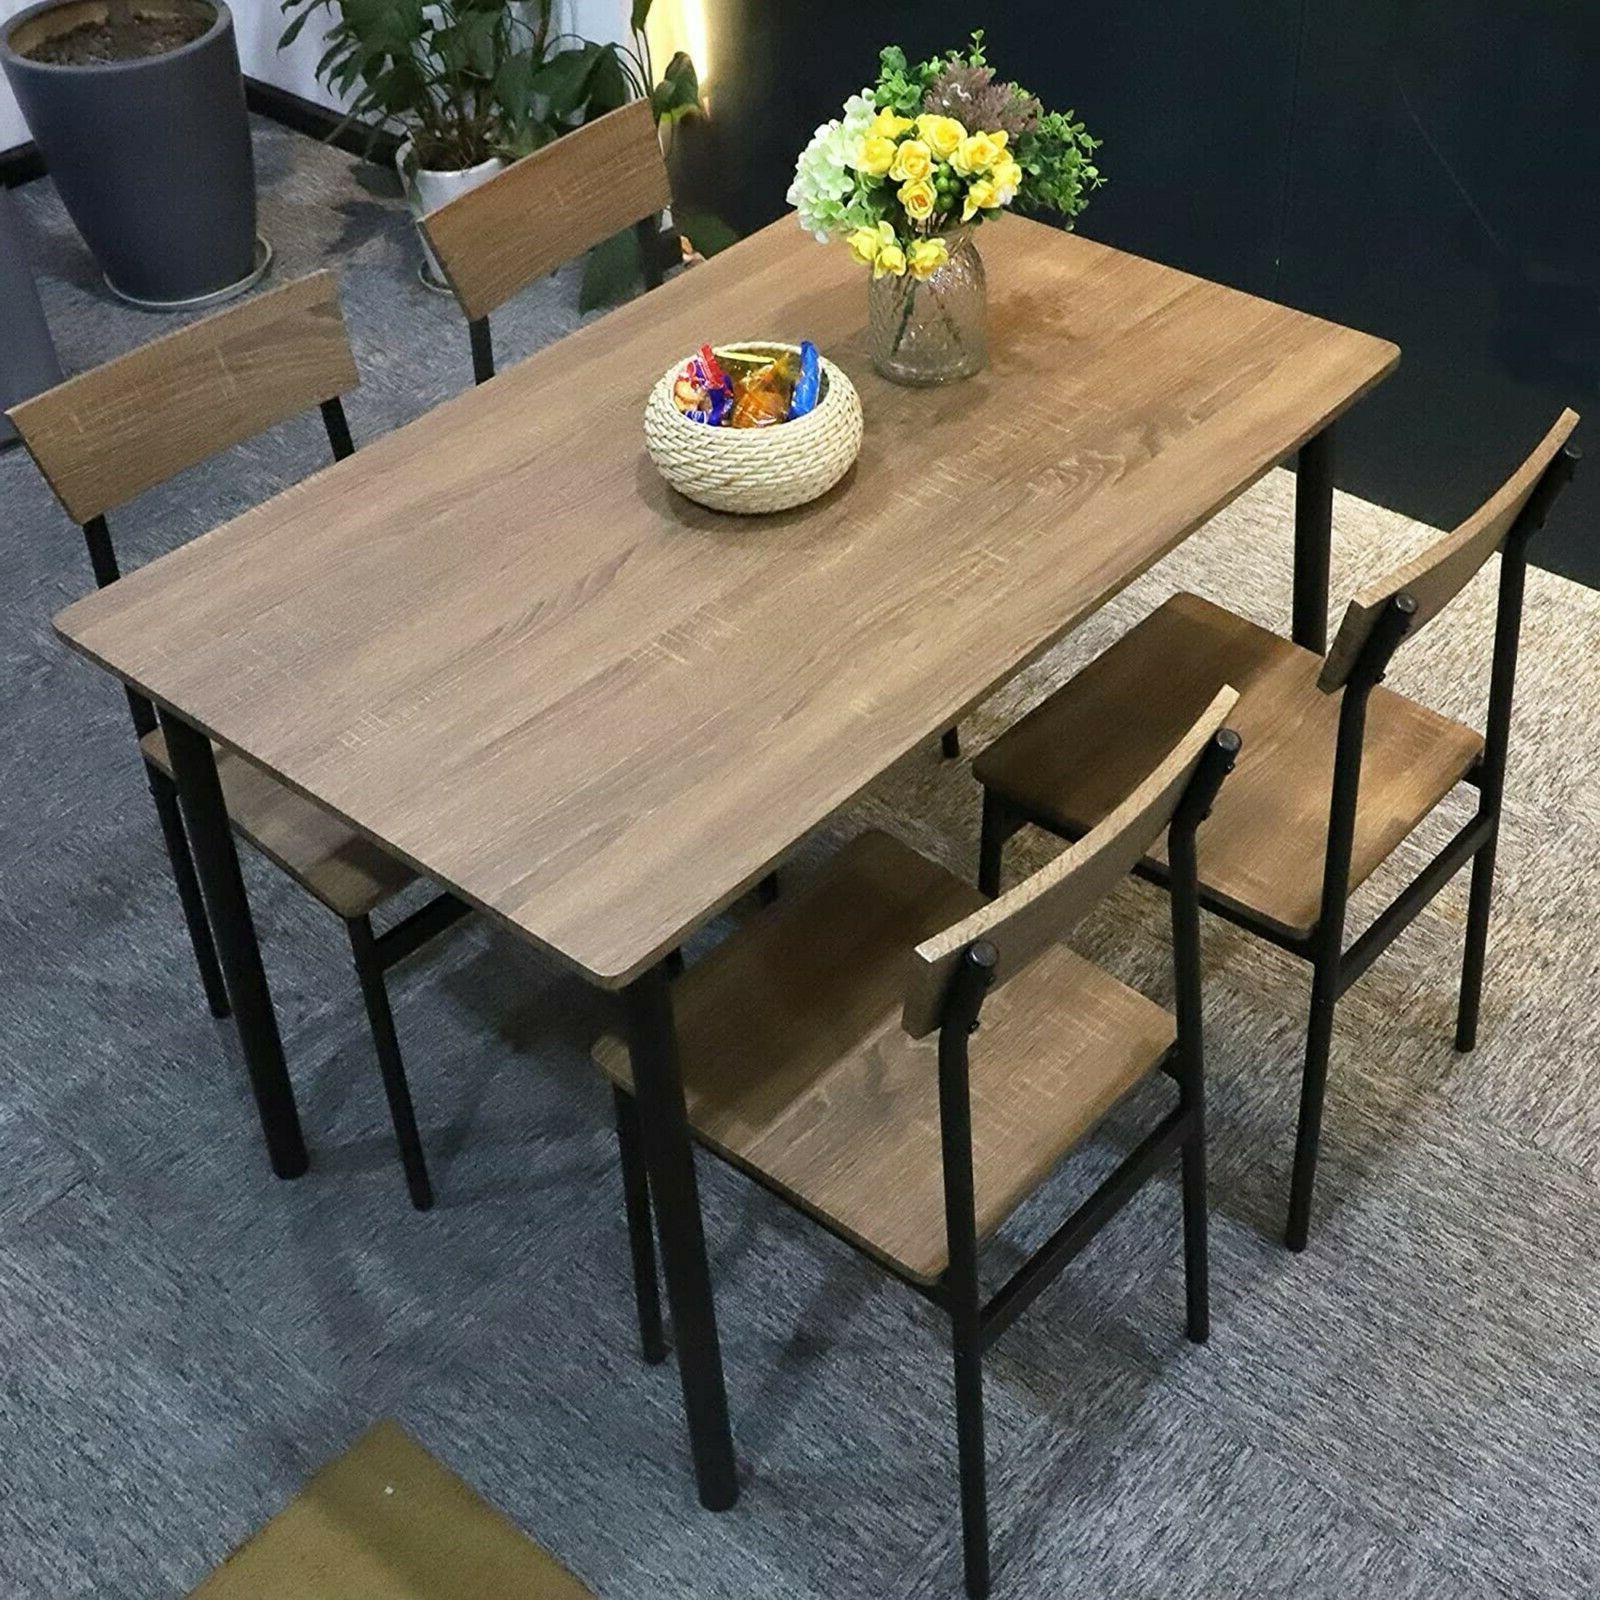 5pc wooden dining table set 4 chairs